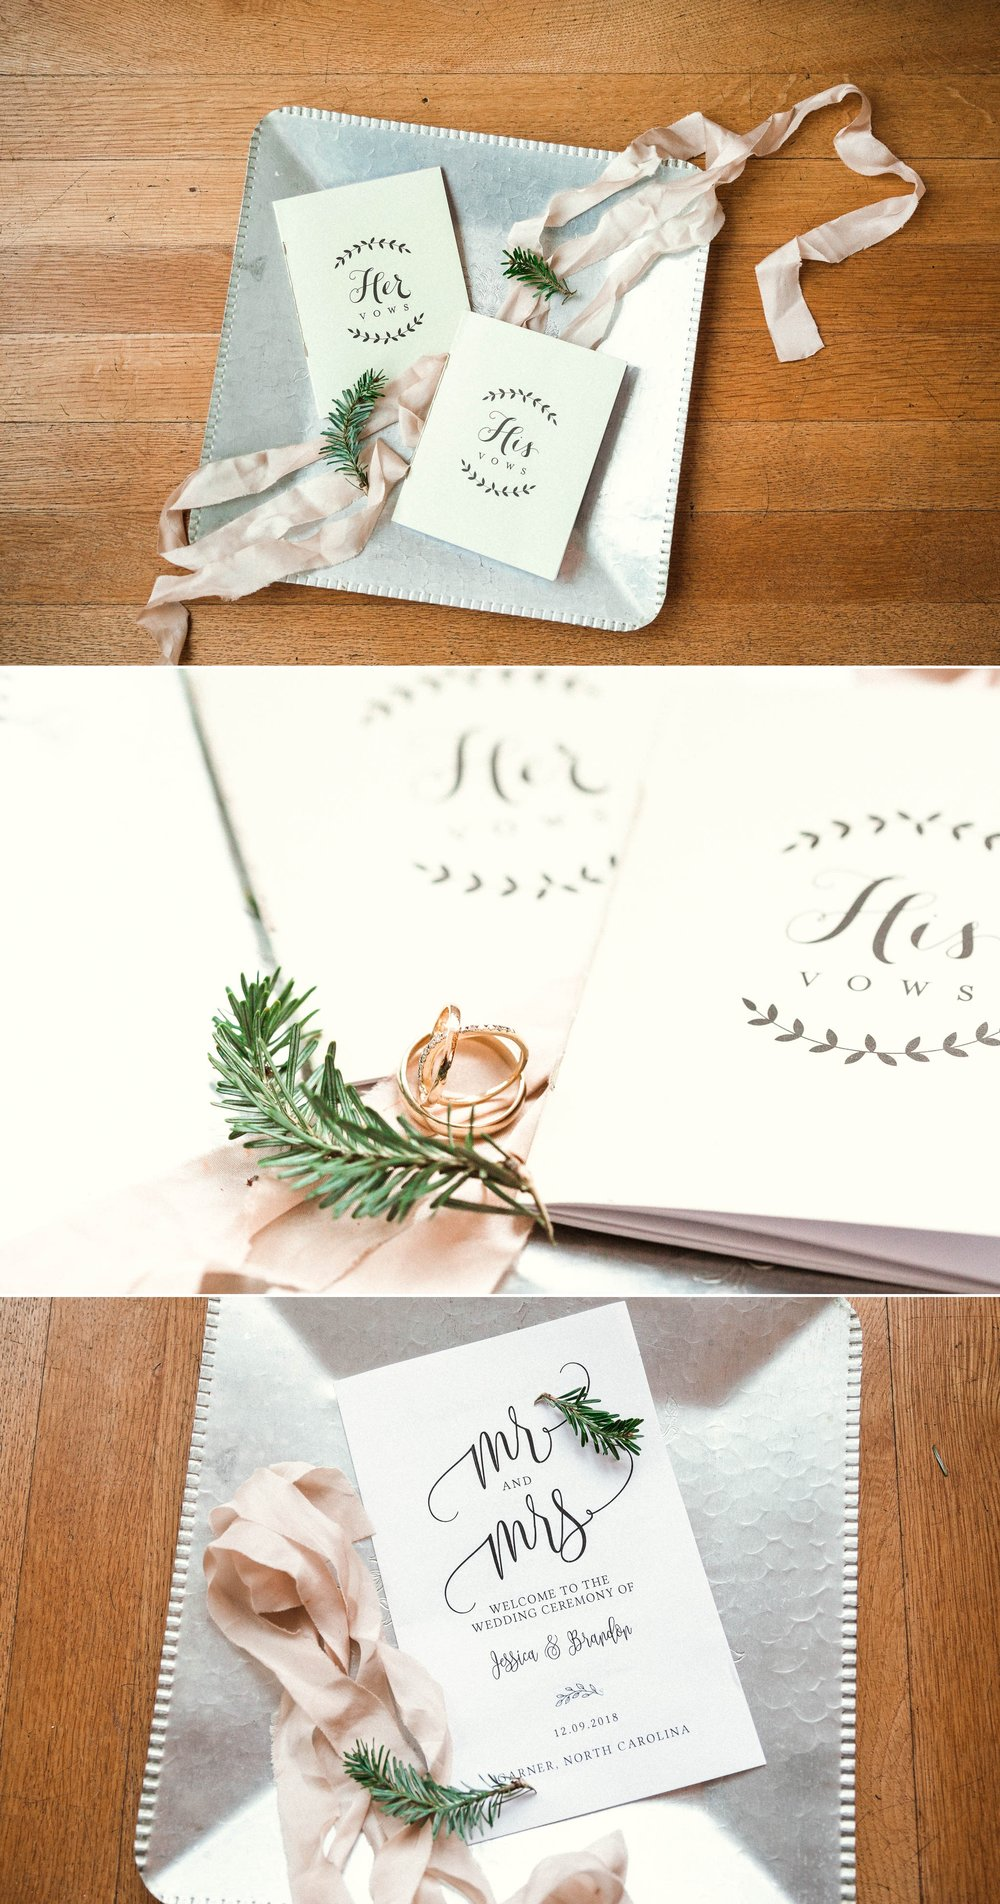 Ringshot, details of the vow books and program - Jessica + Brandon - Snowy Winter Wedding at the Rand Bryan House in Garner, NC - Raleigh North Carolina Wedding Photographer